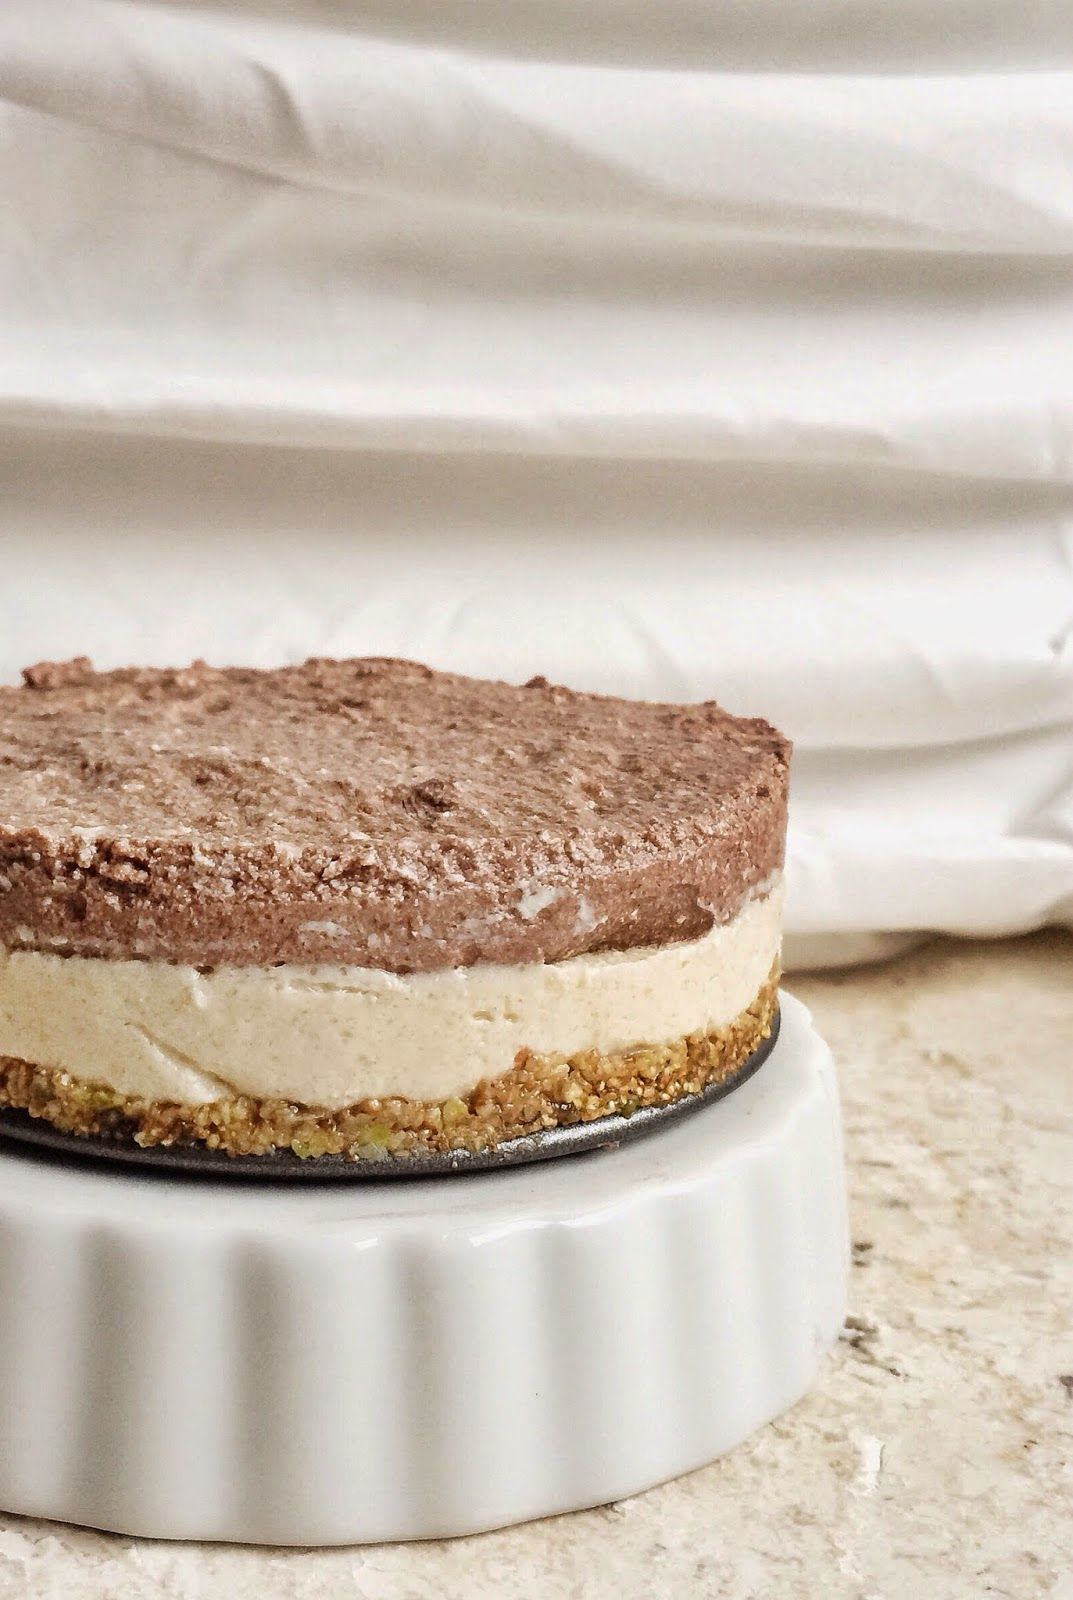 Casey's Wholesome Kitchen: No Bake Chocolate Peanut Butter Mousse Pie